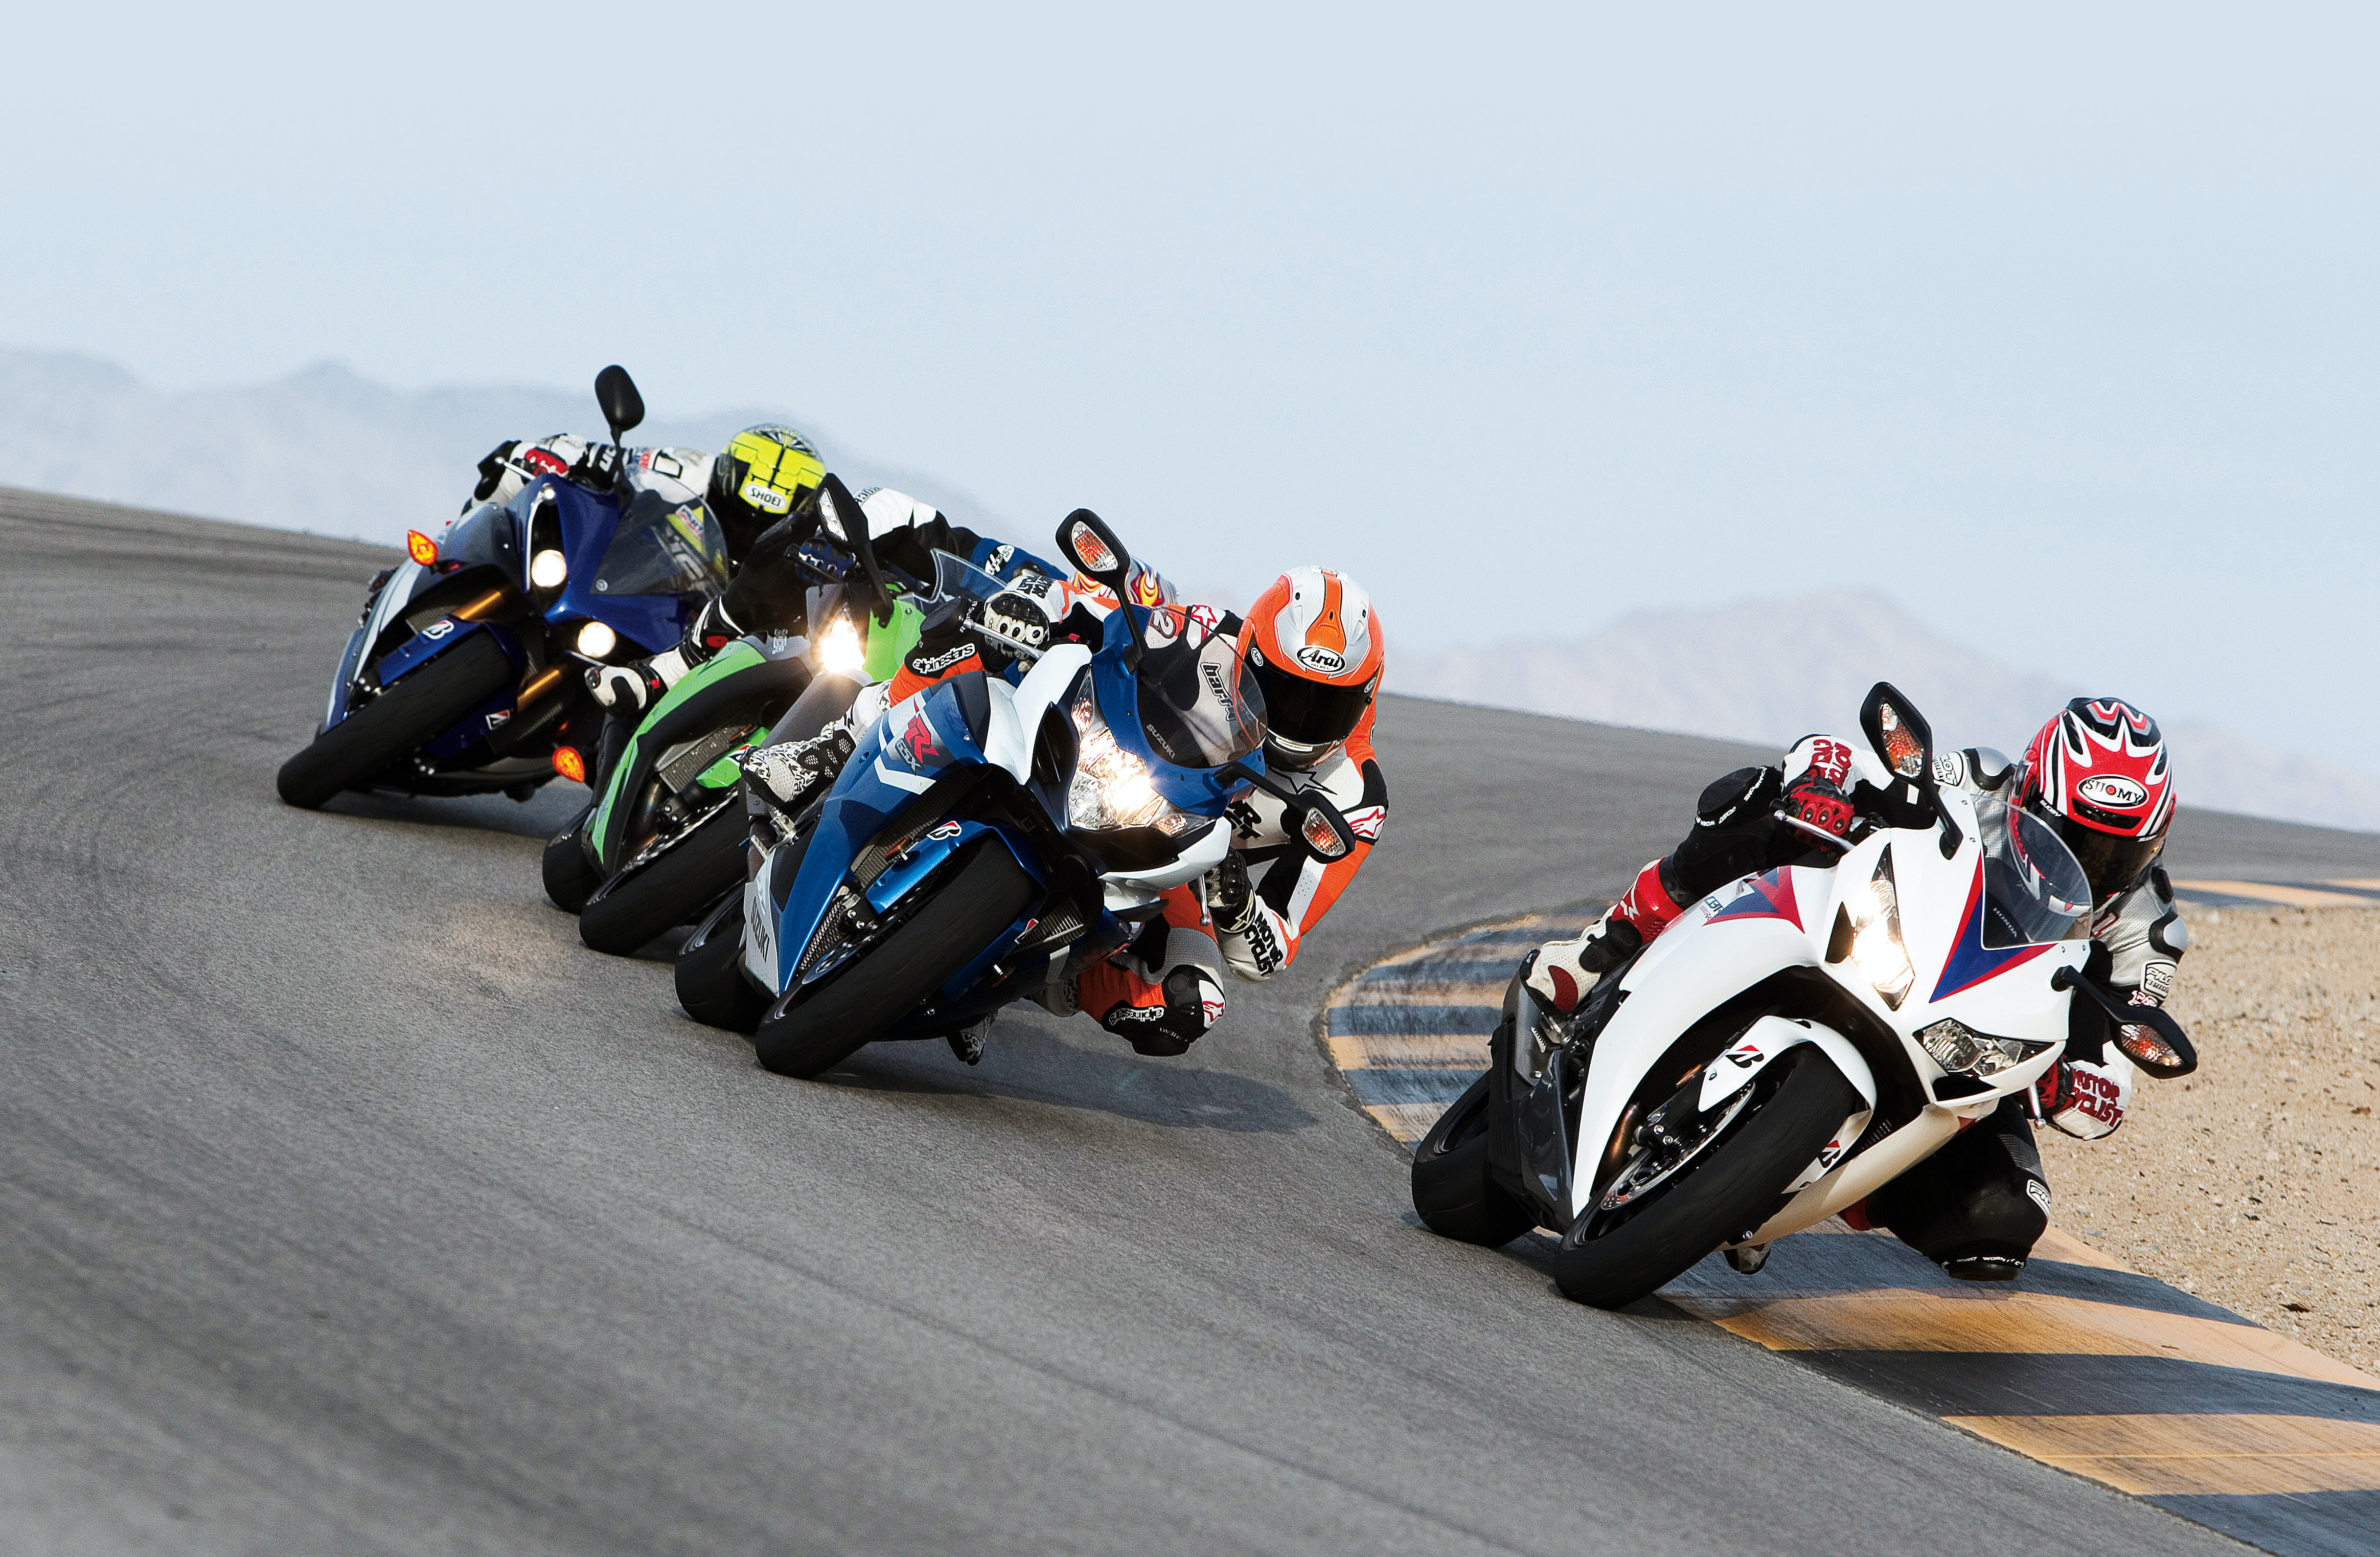 Motorcycle racers drive around a curve during a competition